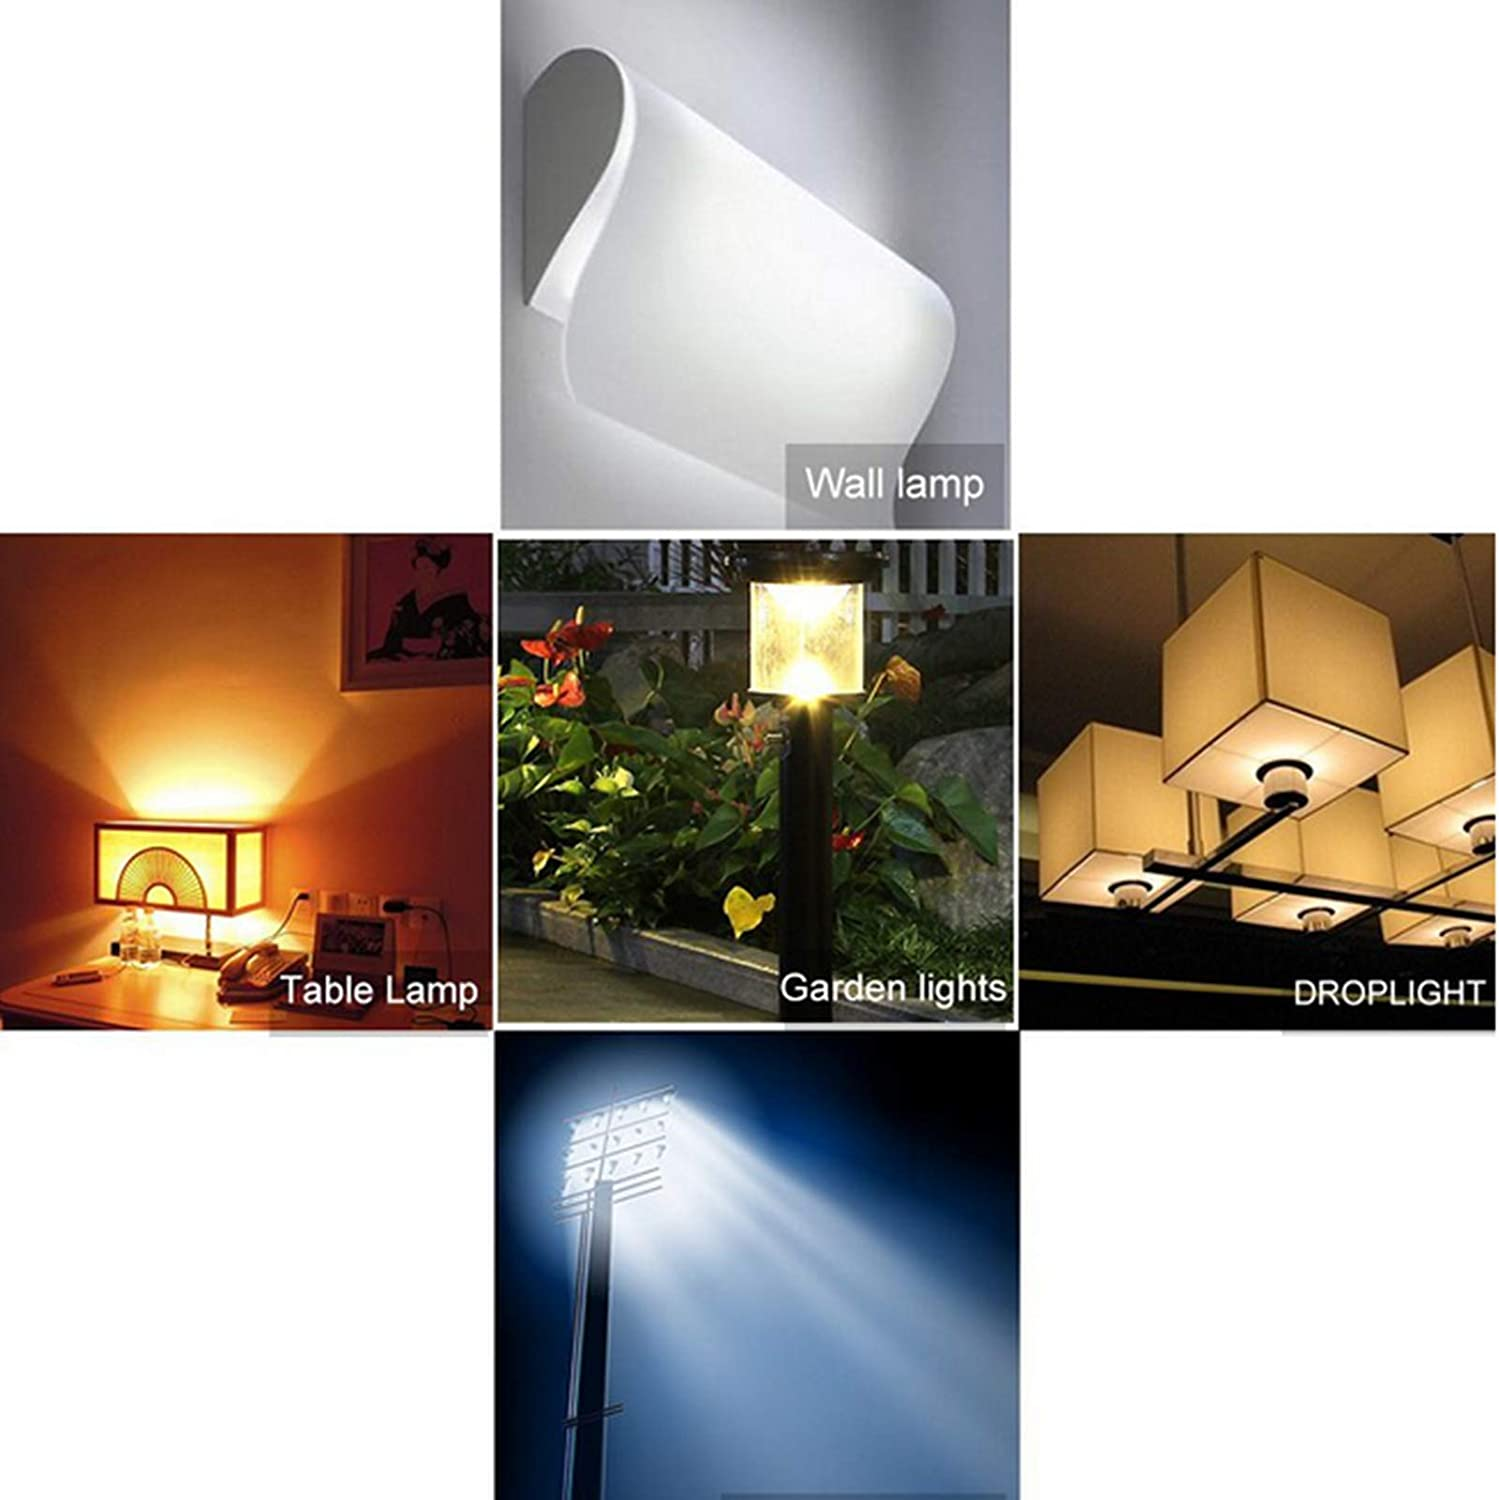 Cool White 6500K Low-Consumption Bulb AC 110-220V 1000Lm 10W 76 2835 SMD Flood Light SYNL 6X R7S Dimmable Corn LED Bulb Equivalent to 100W Halogen Bulb